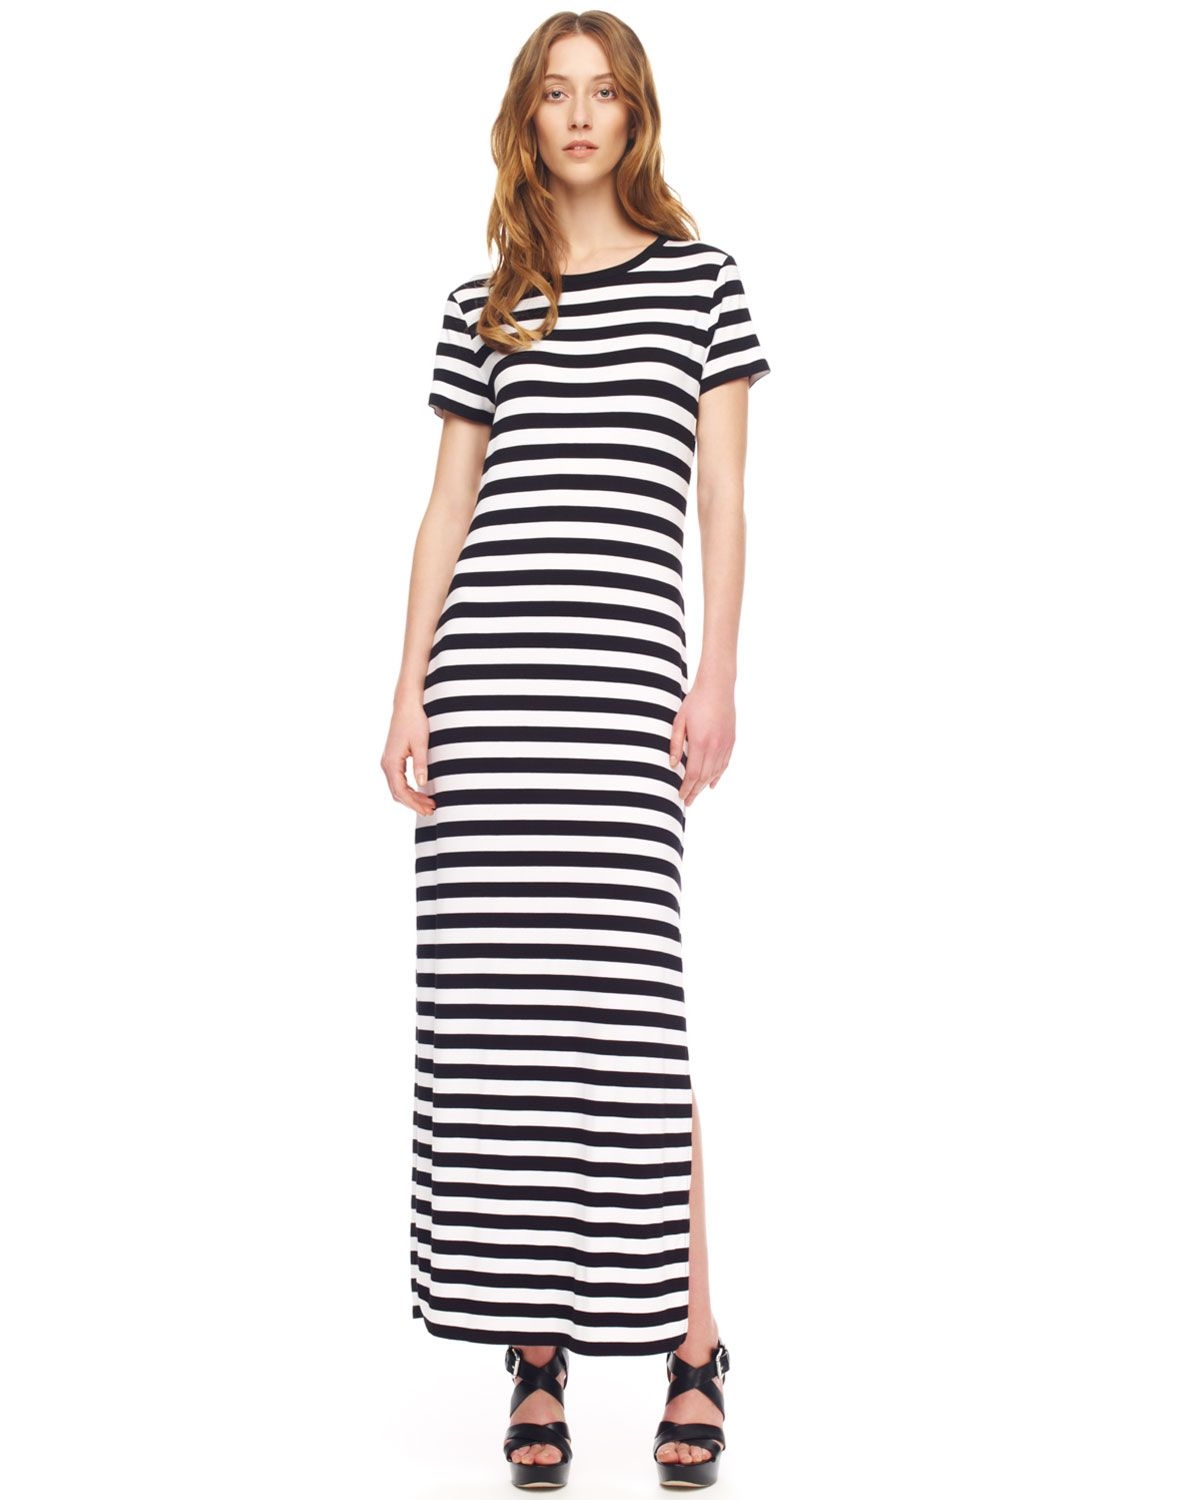 black-striped-maxi-dress- | Striped Maxi Dress | Pinterest ...